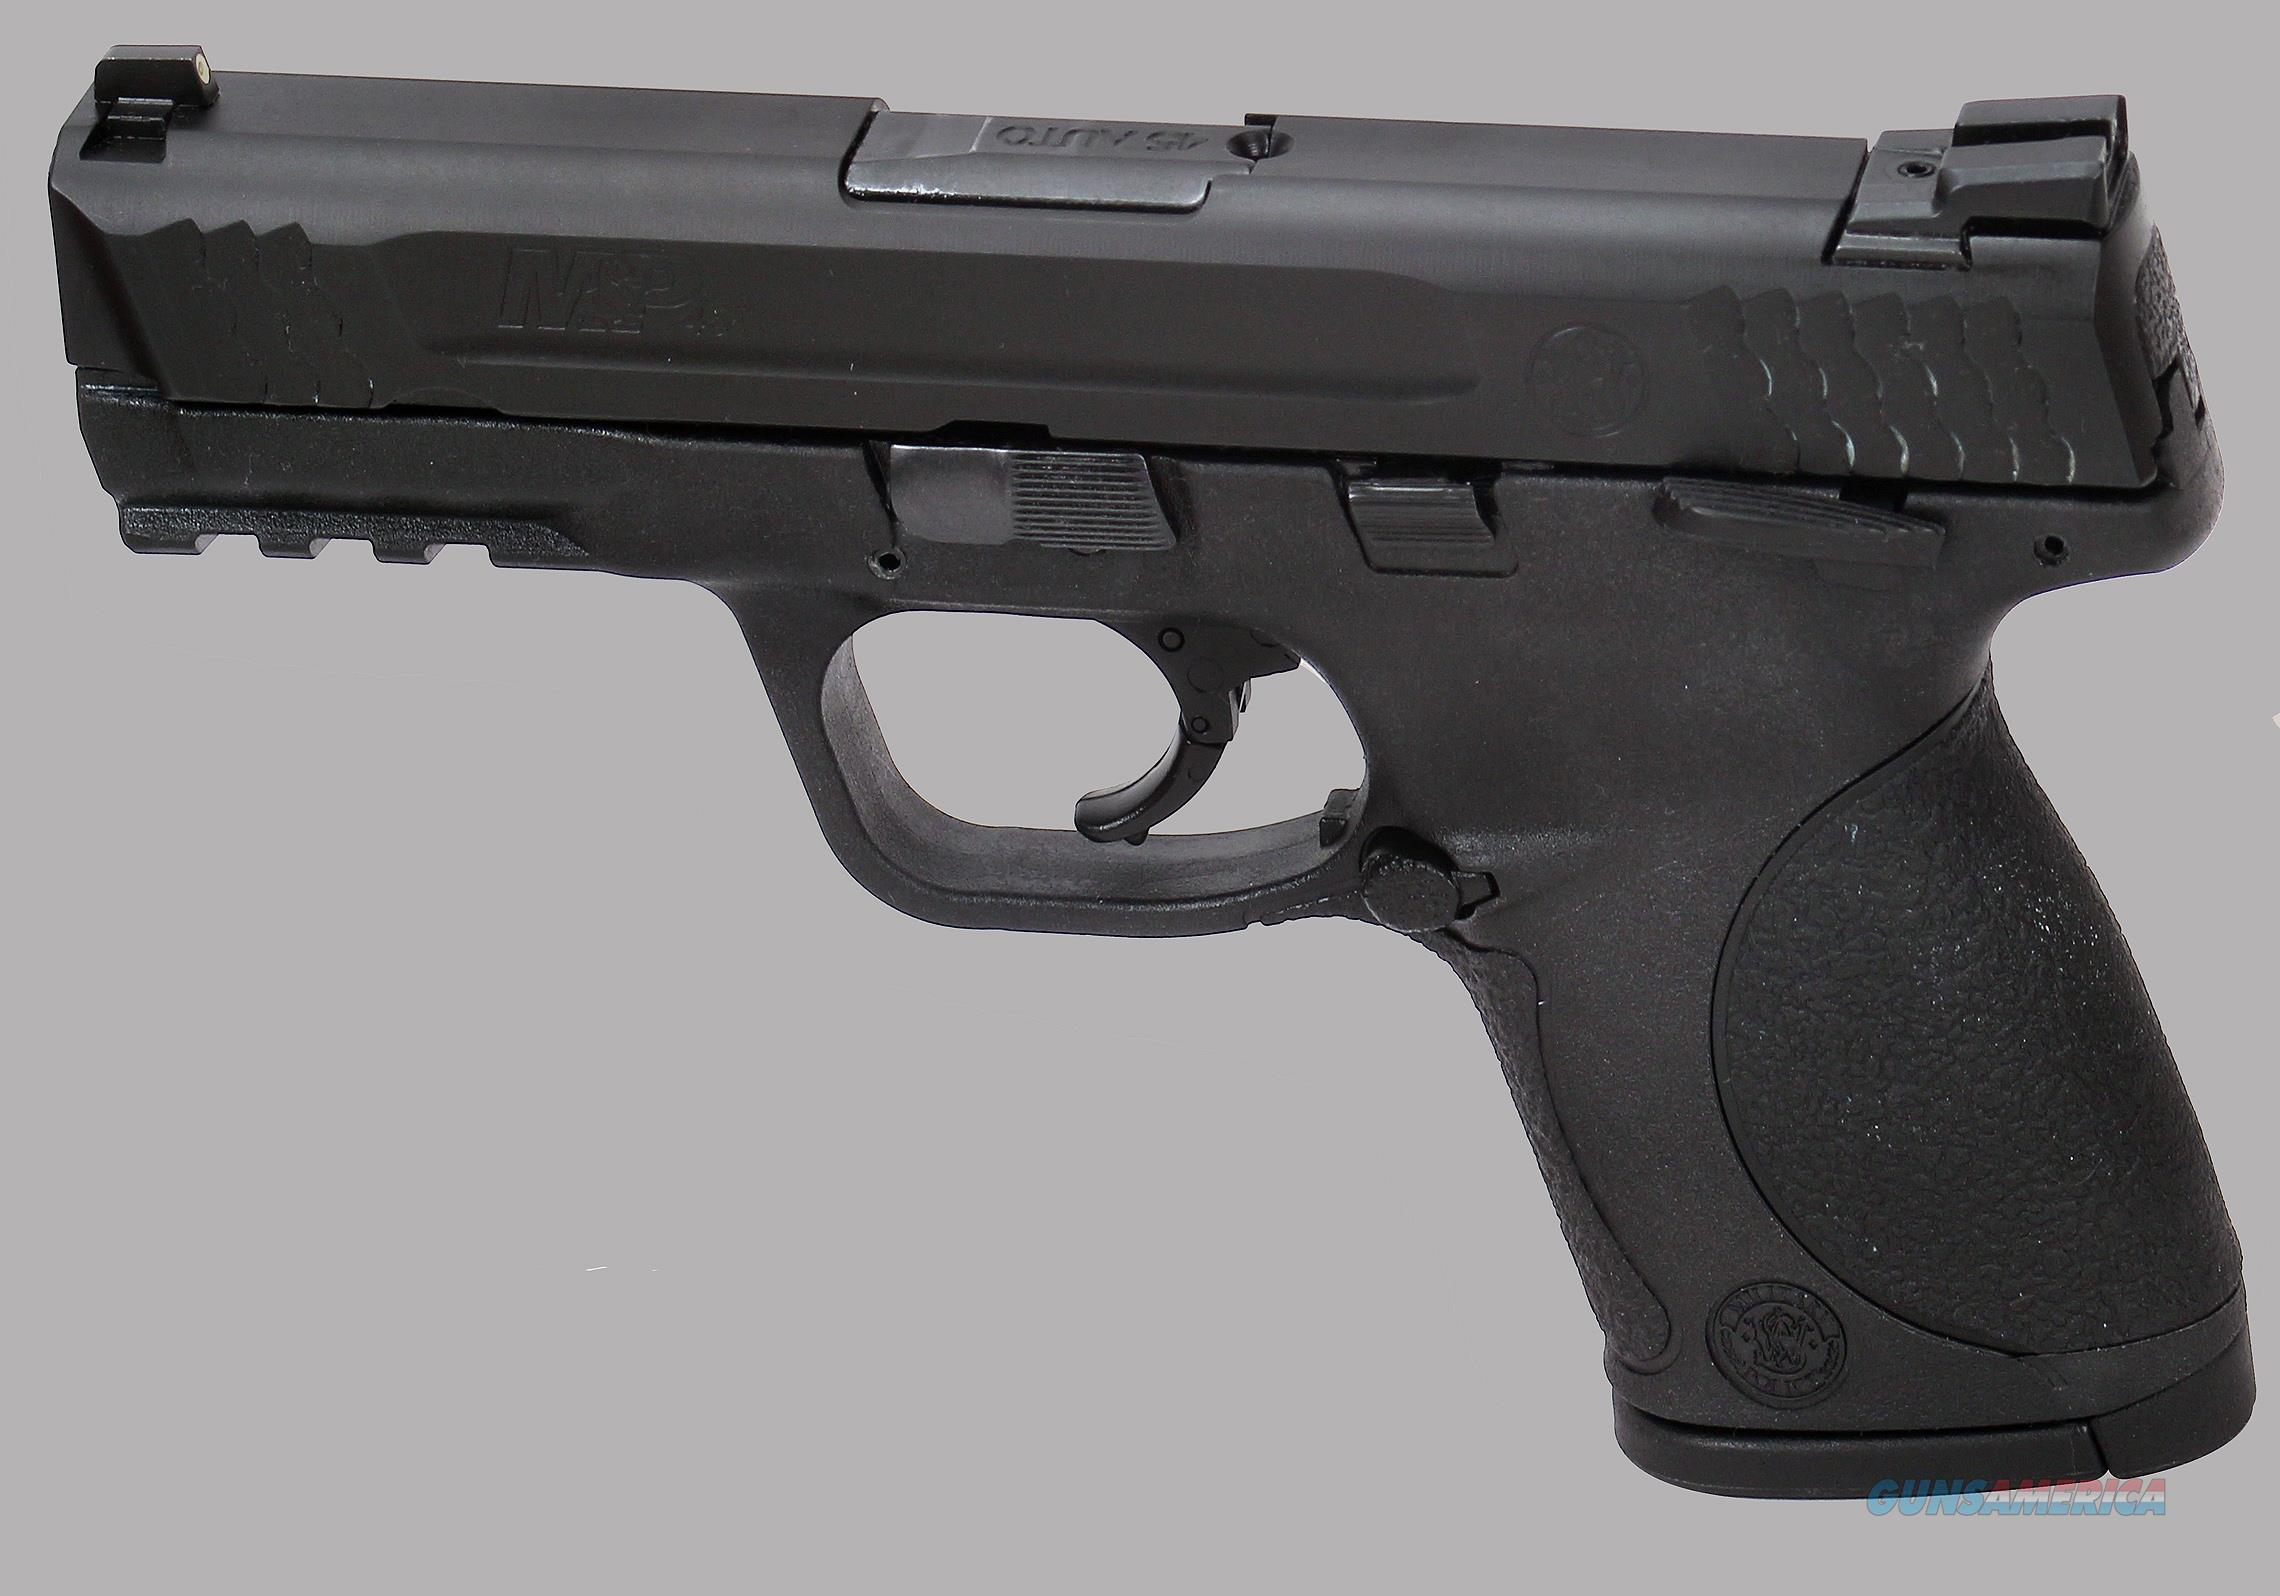 Smith & Wesson 45acp M&P 45 Pistol  Guns > Pistols > Smith & Wesson Pistols - Autos > Polymer Frame